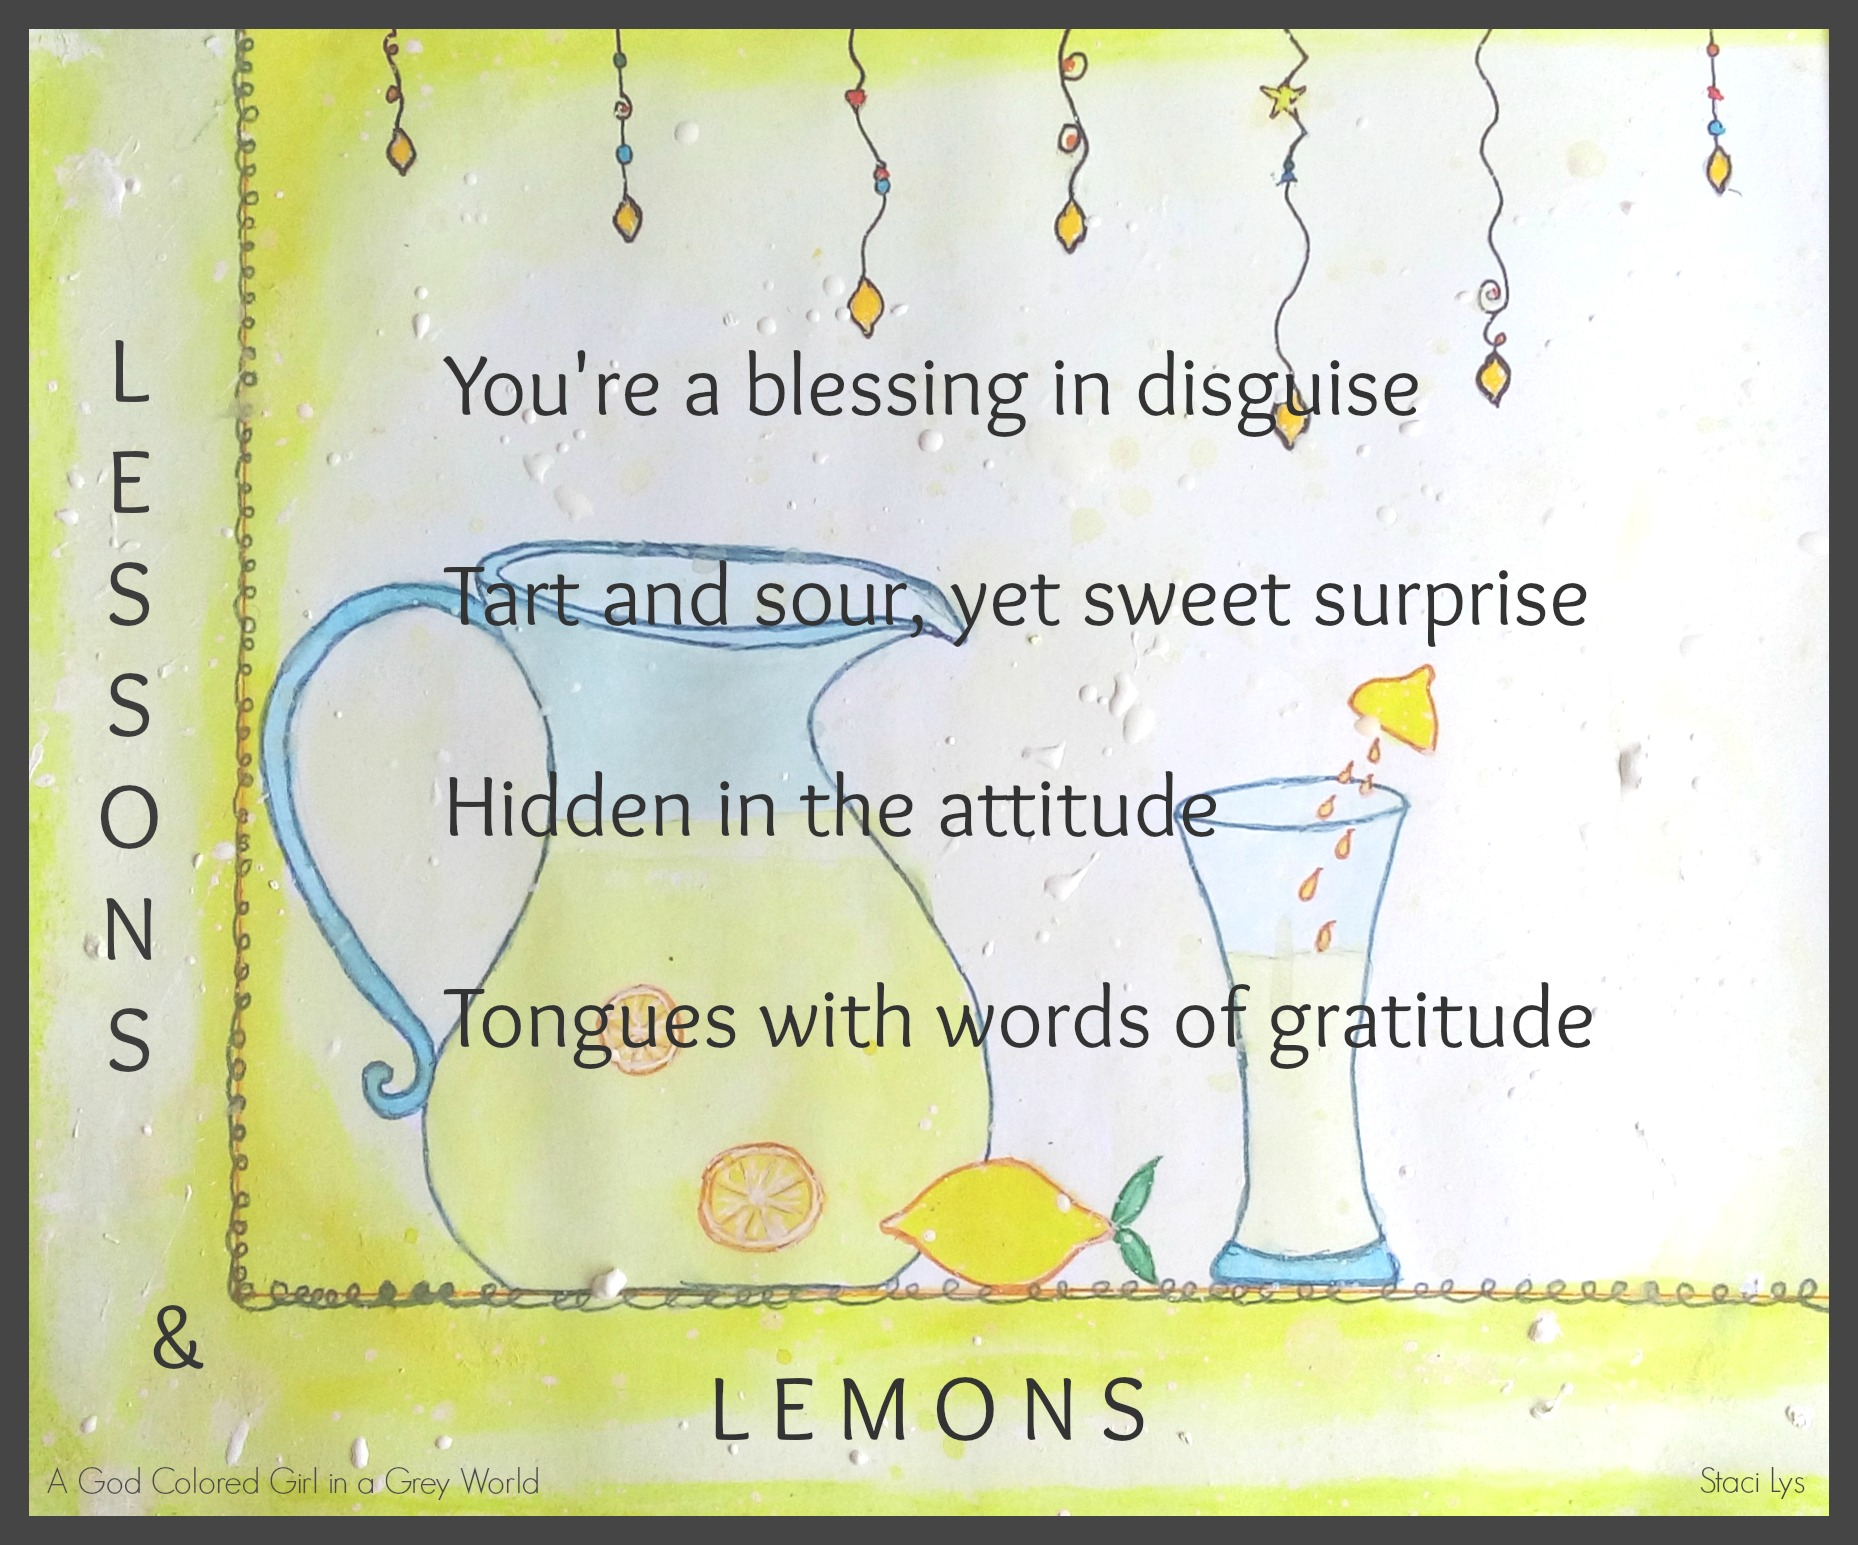 Lessons and lemons